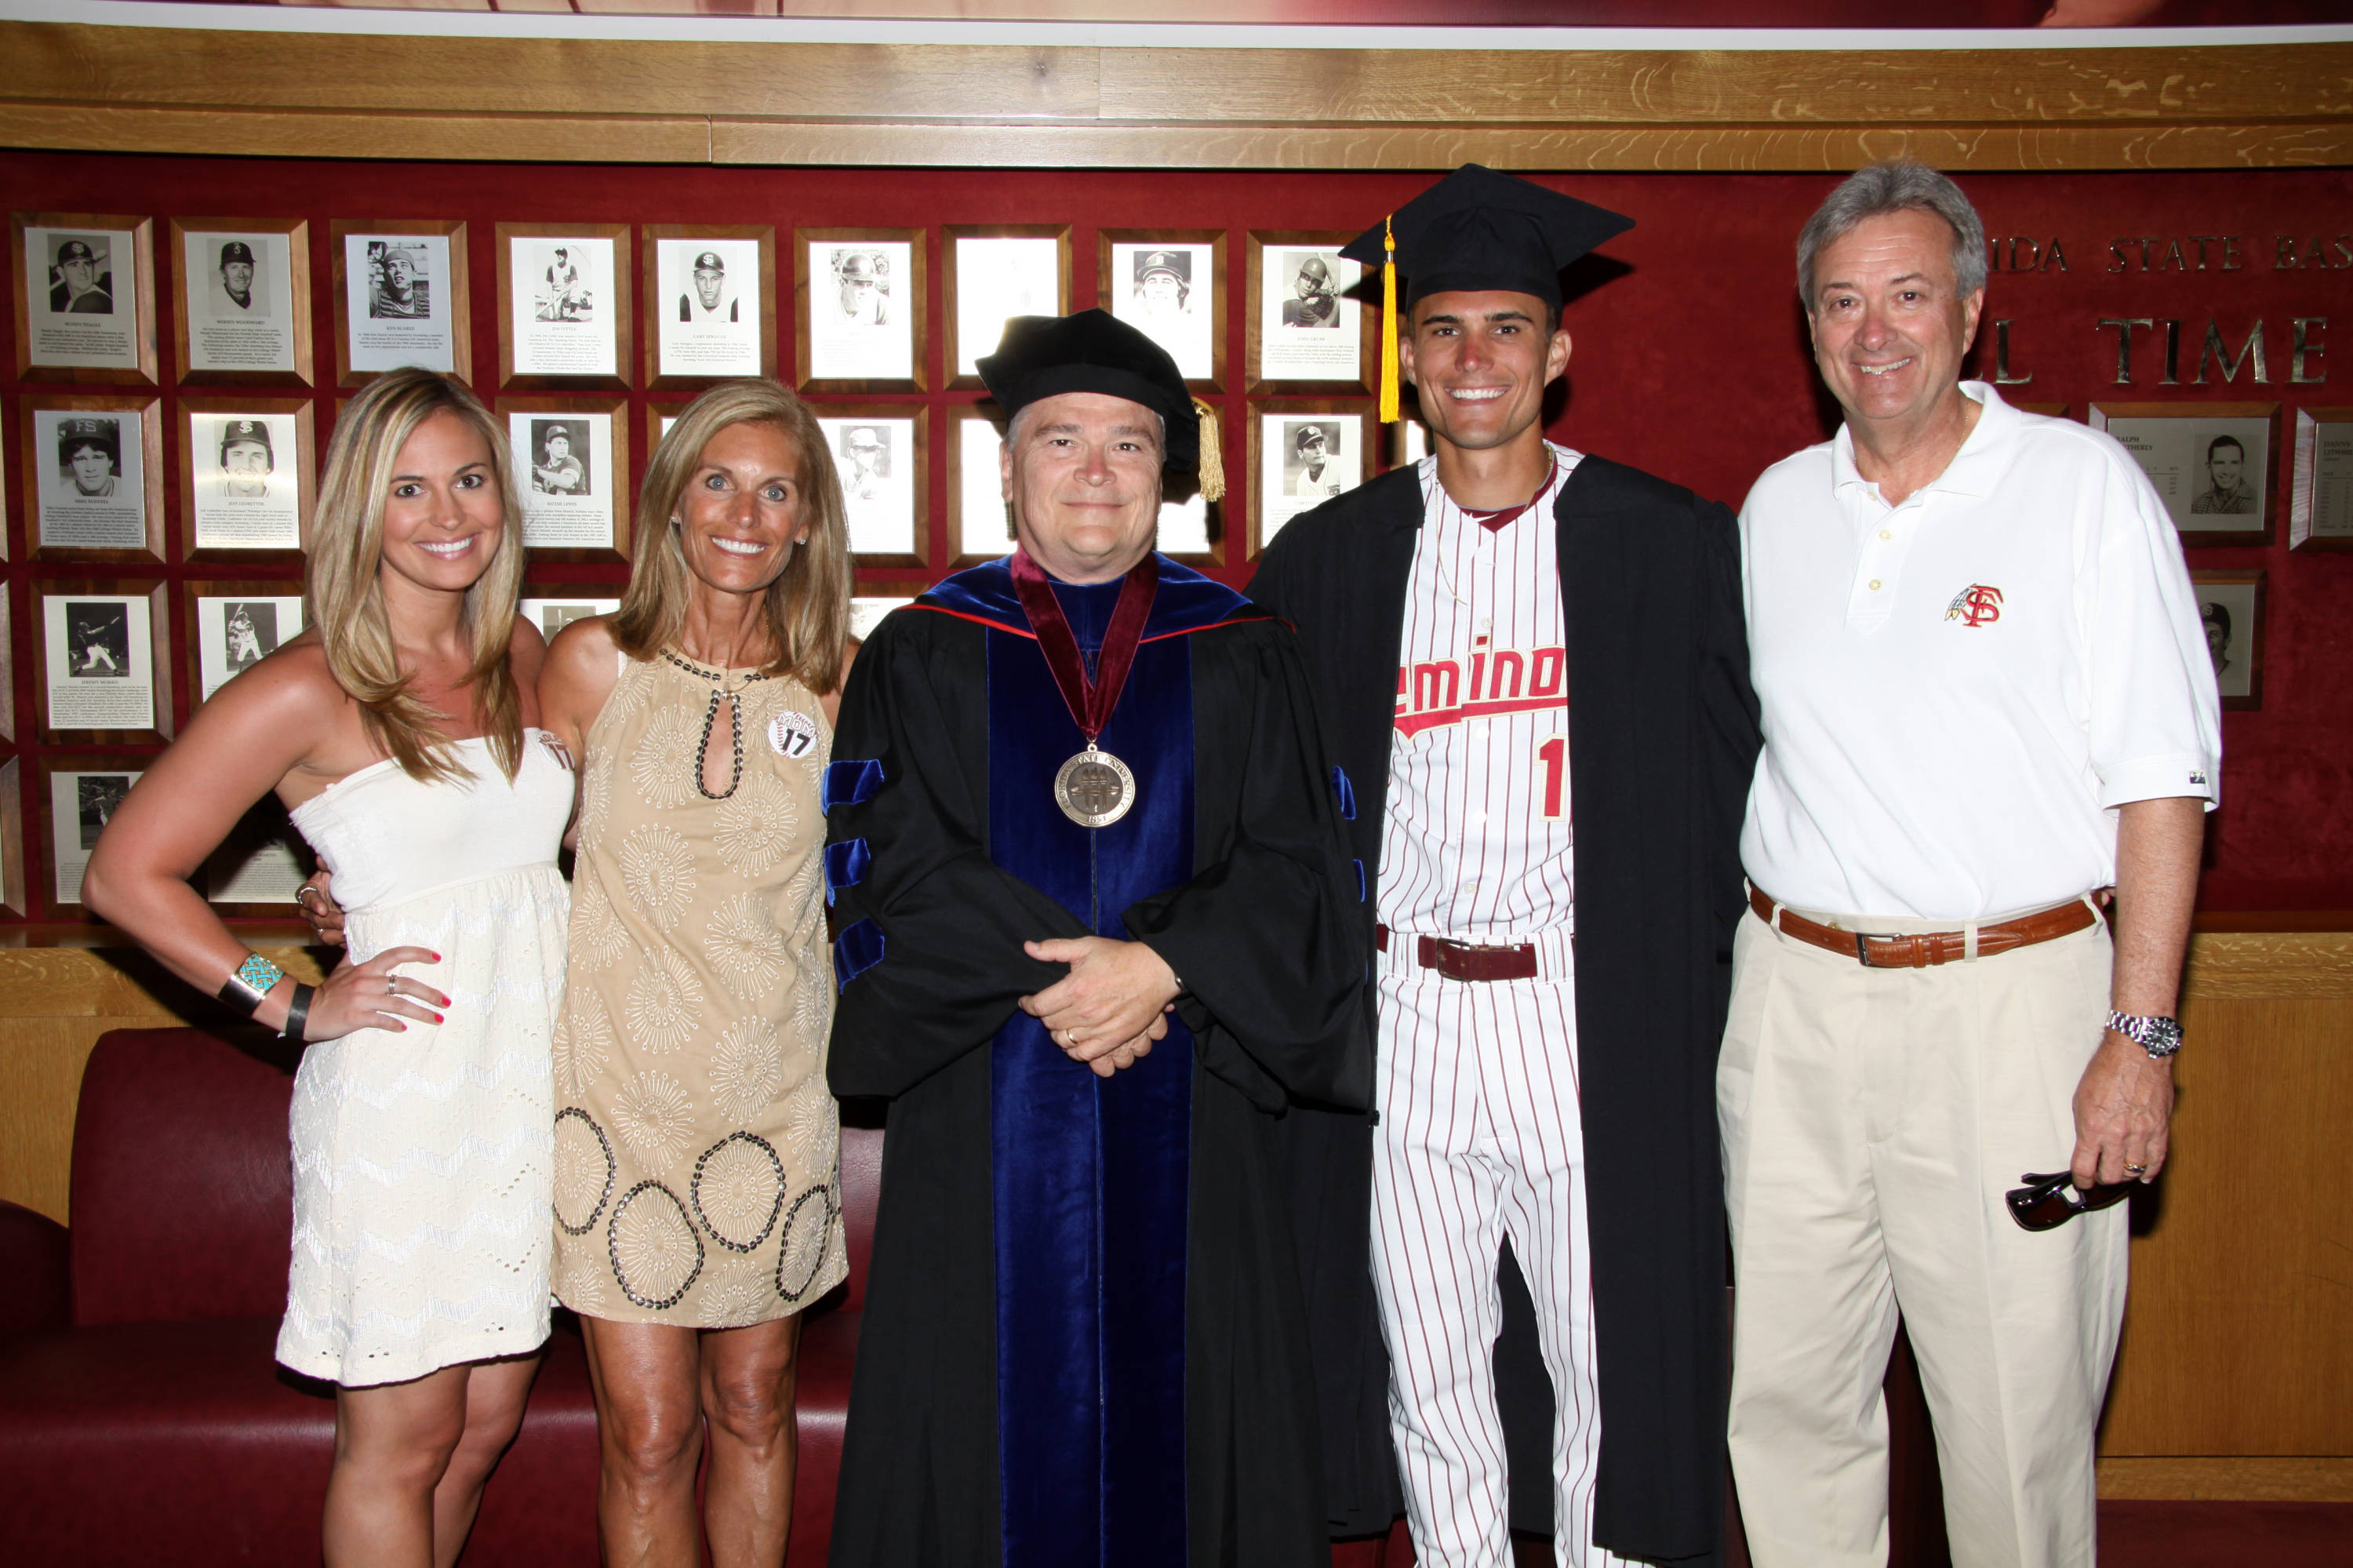 2011 Spring Graduation Ceremony held at Dick Howser Stadium to honor the graduating baseball seniors. Robby Stahl (17) with family and President Barron